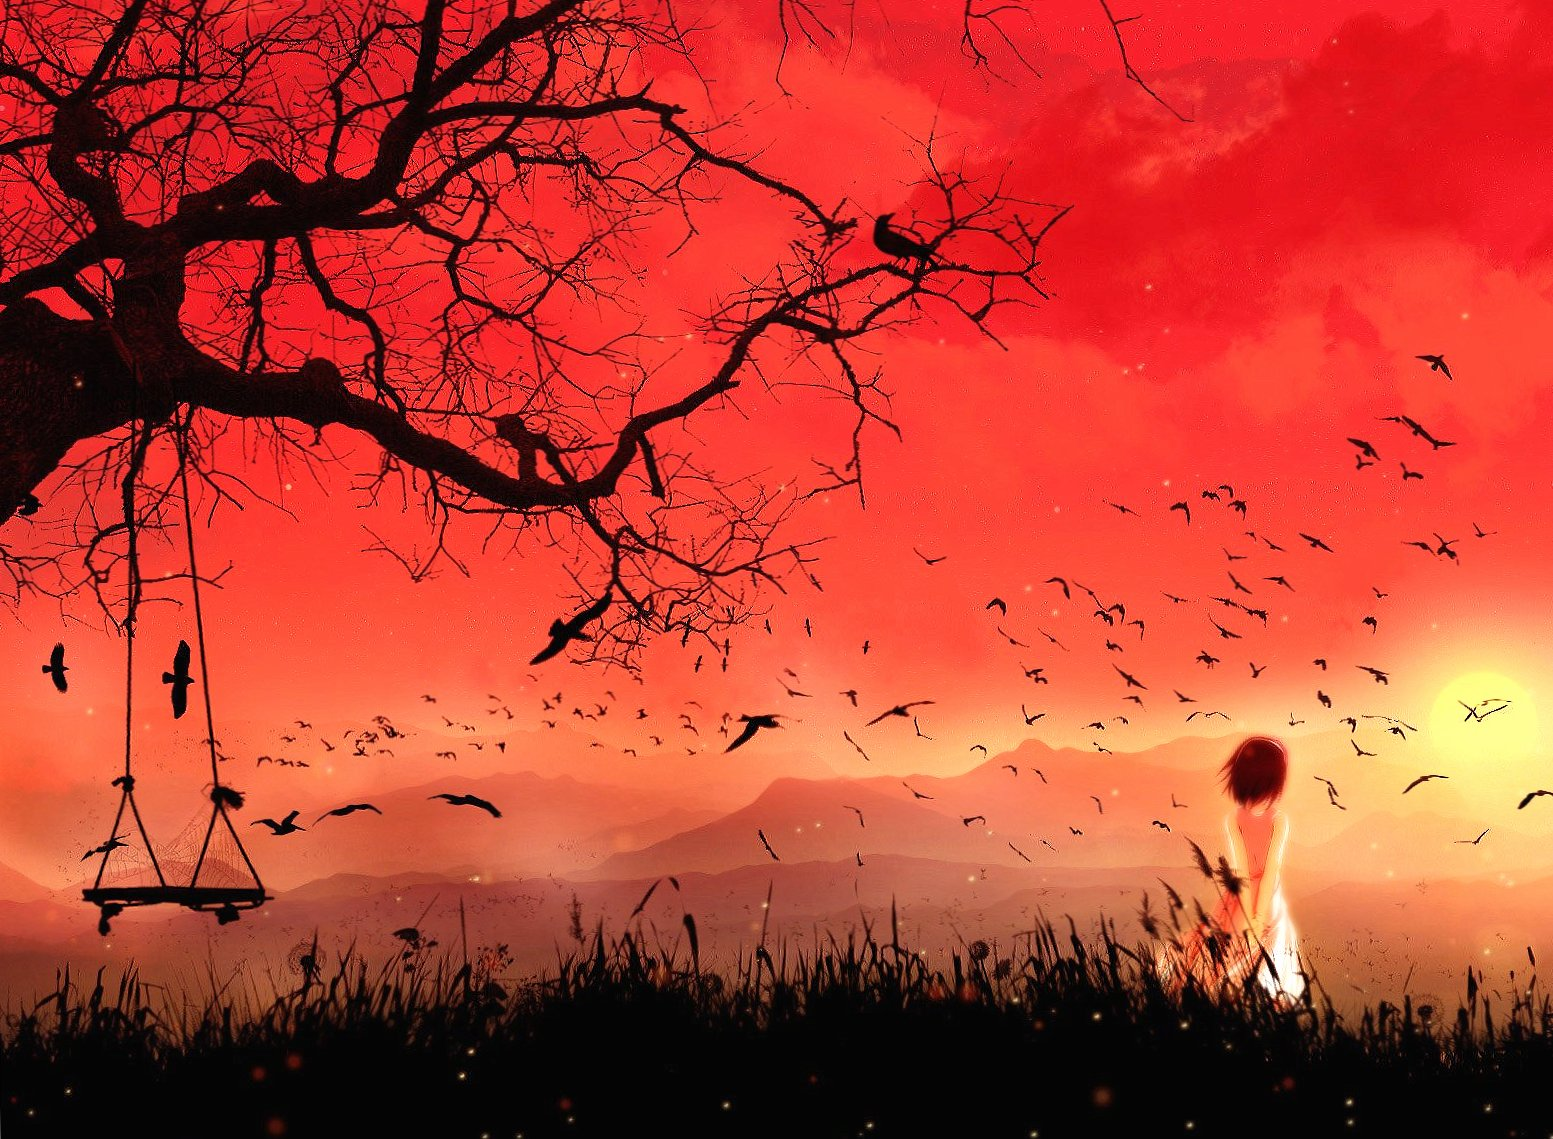 Alone children and birds fantasy wallpapers HD quality